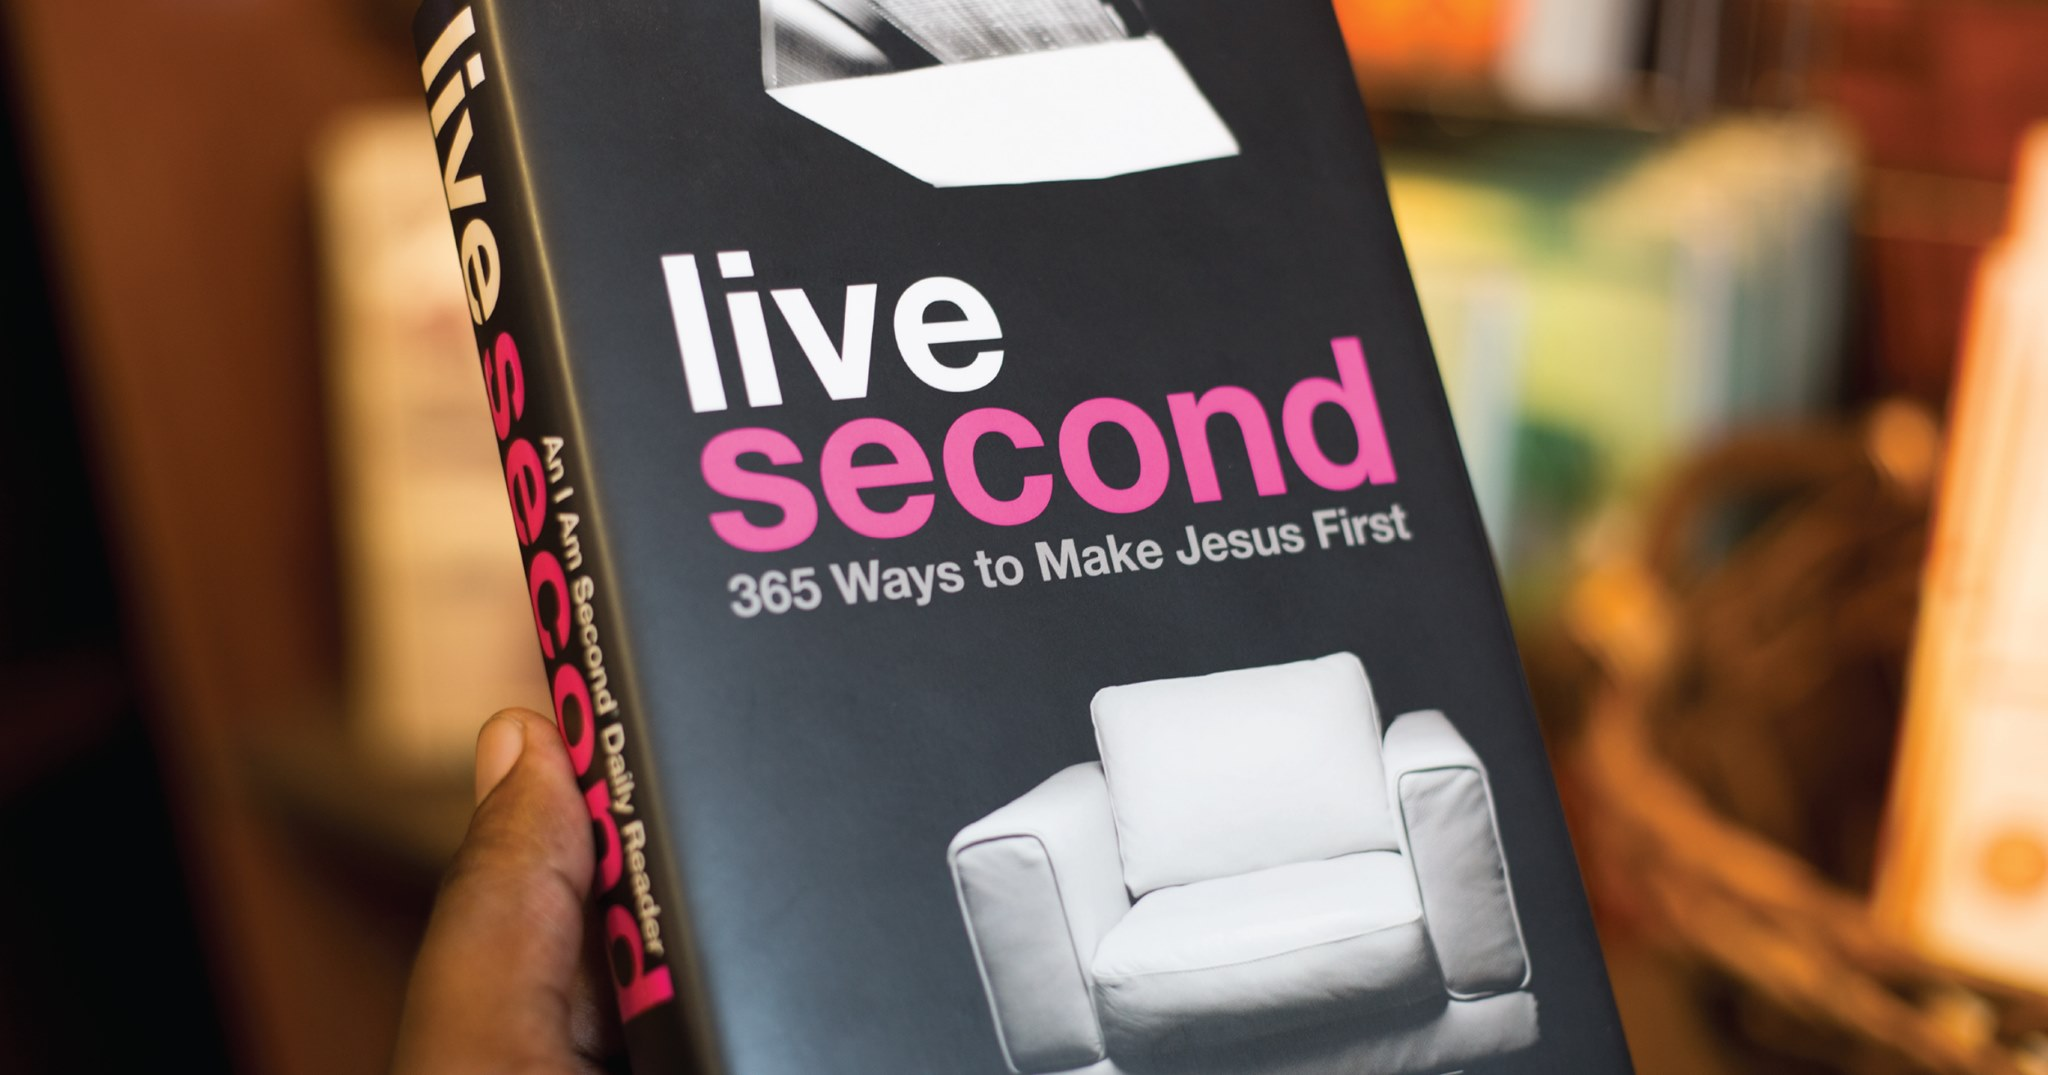 I Am Second unveils new discipleship tool